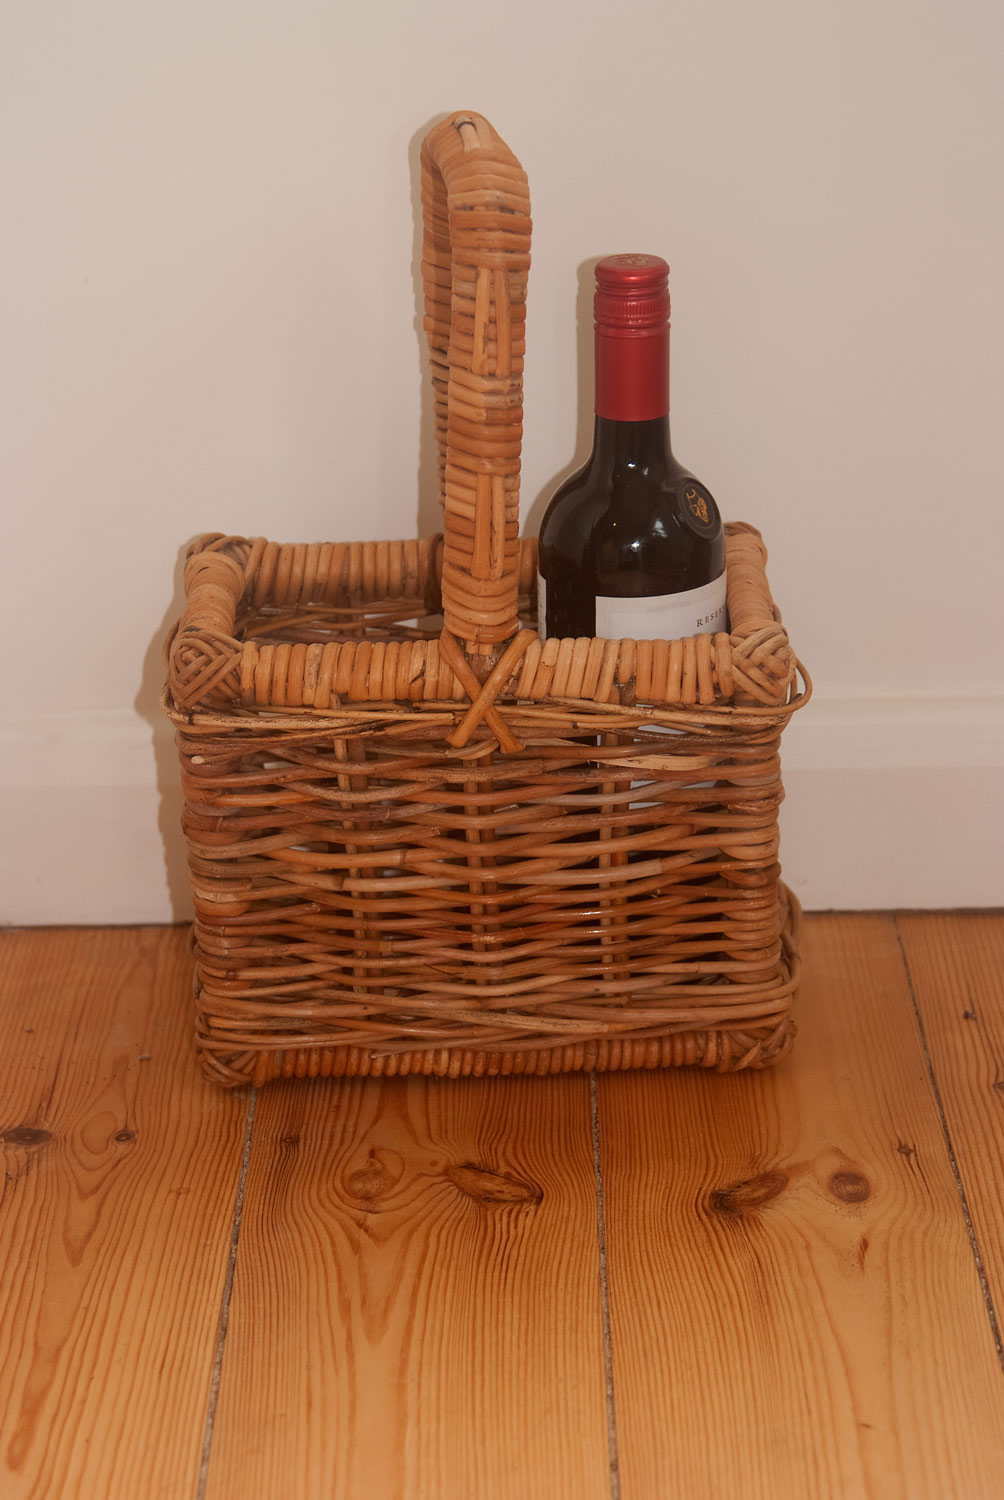 wicker bottle basket